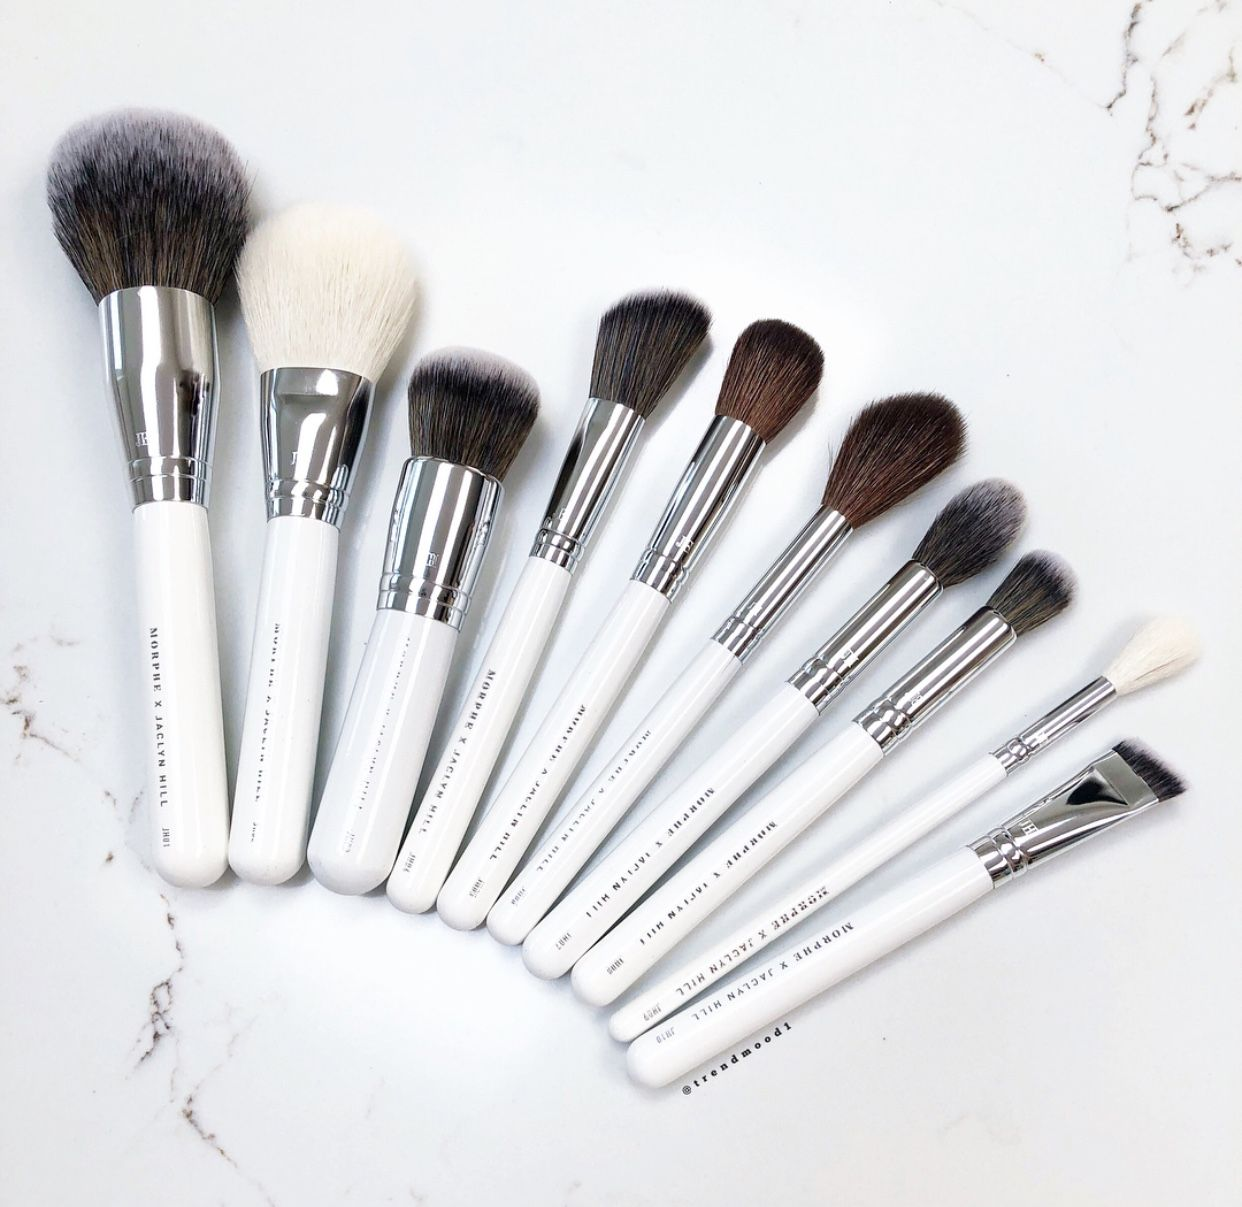 Jaclyn Hill x Morphe Brush Vault Collection Jaclyn hill